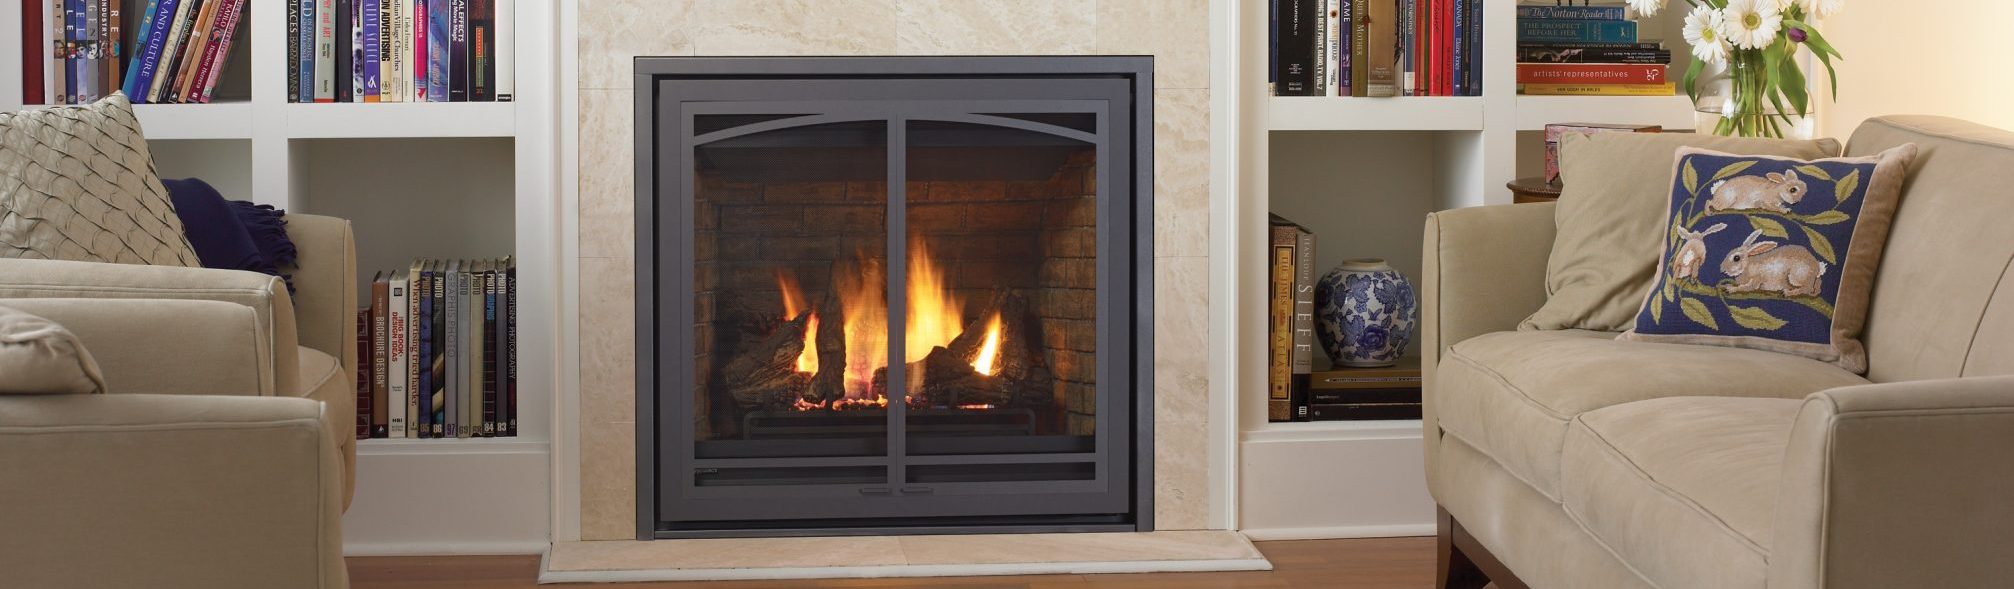 Home | Chimney Cleaning in Maryland | CompleteChimneys.com |